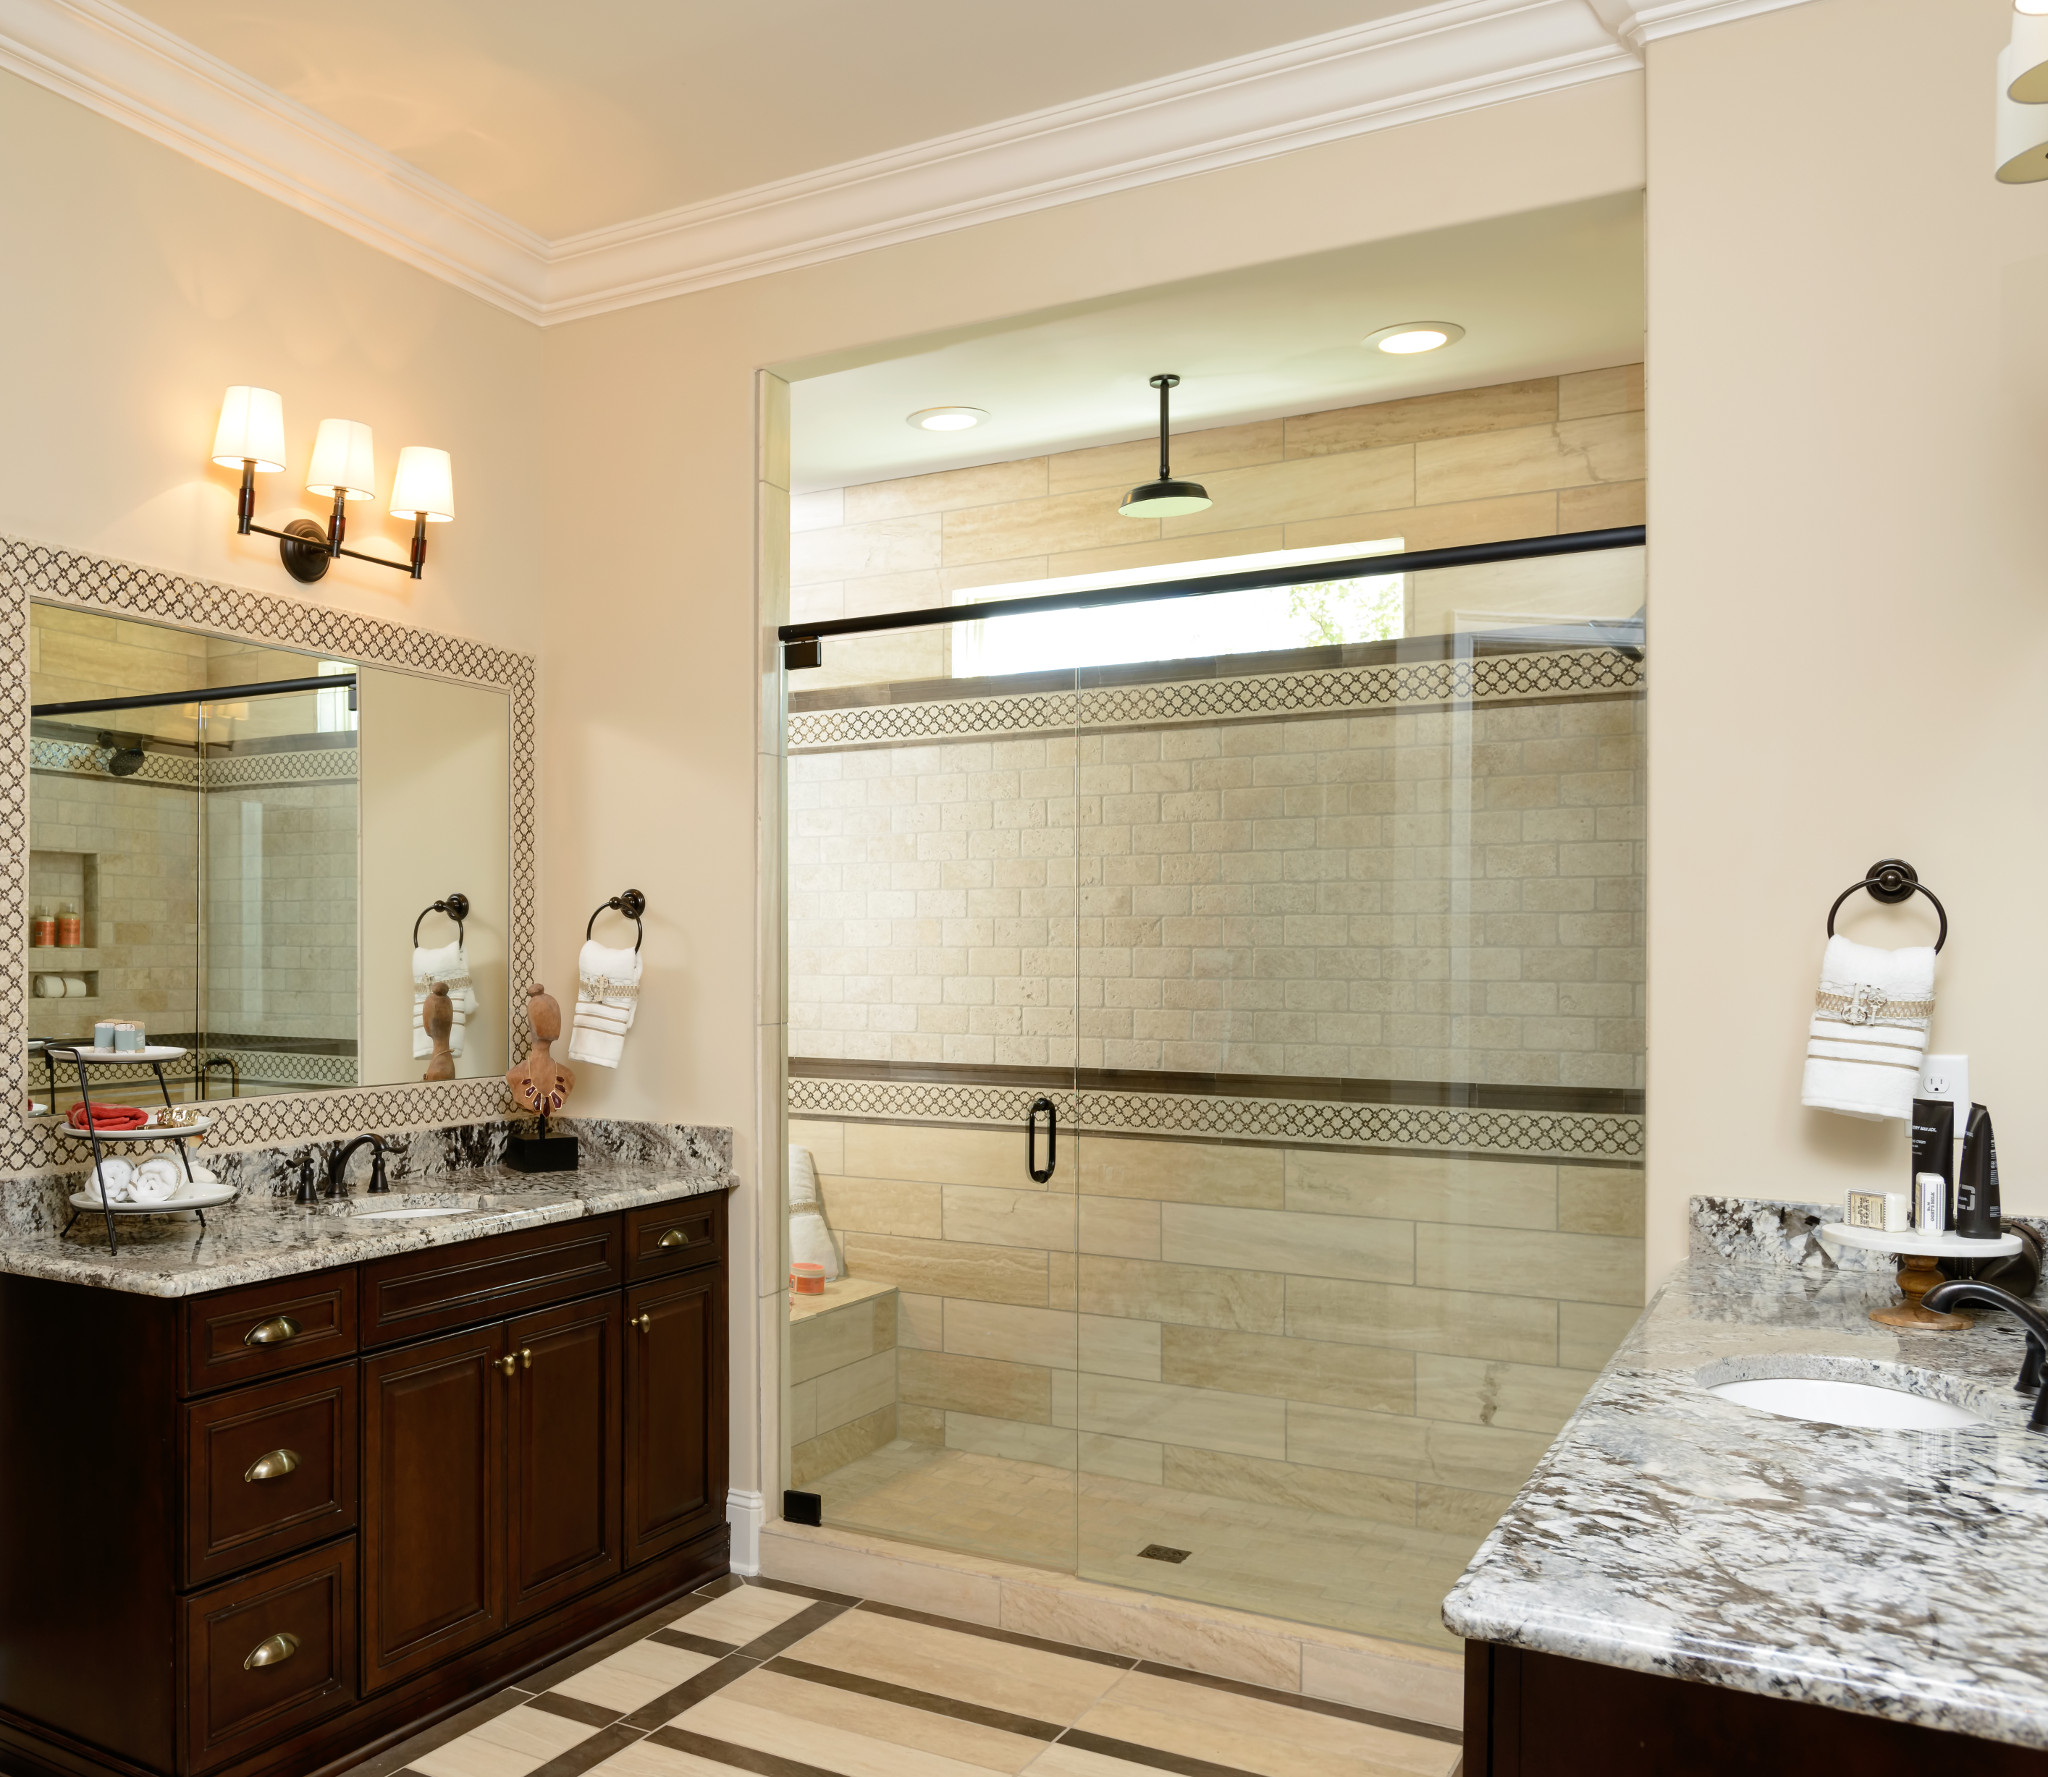 Trilogy Lake Norman Captivate Plan Master Bath